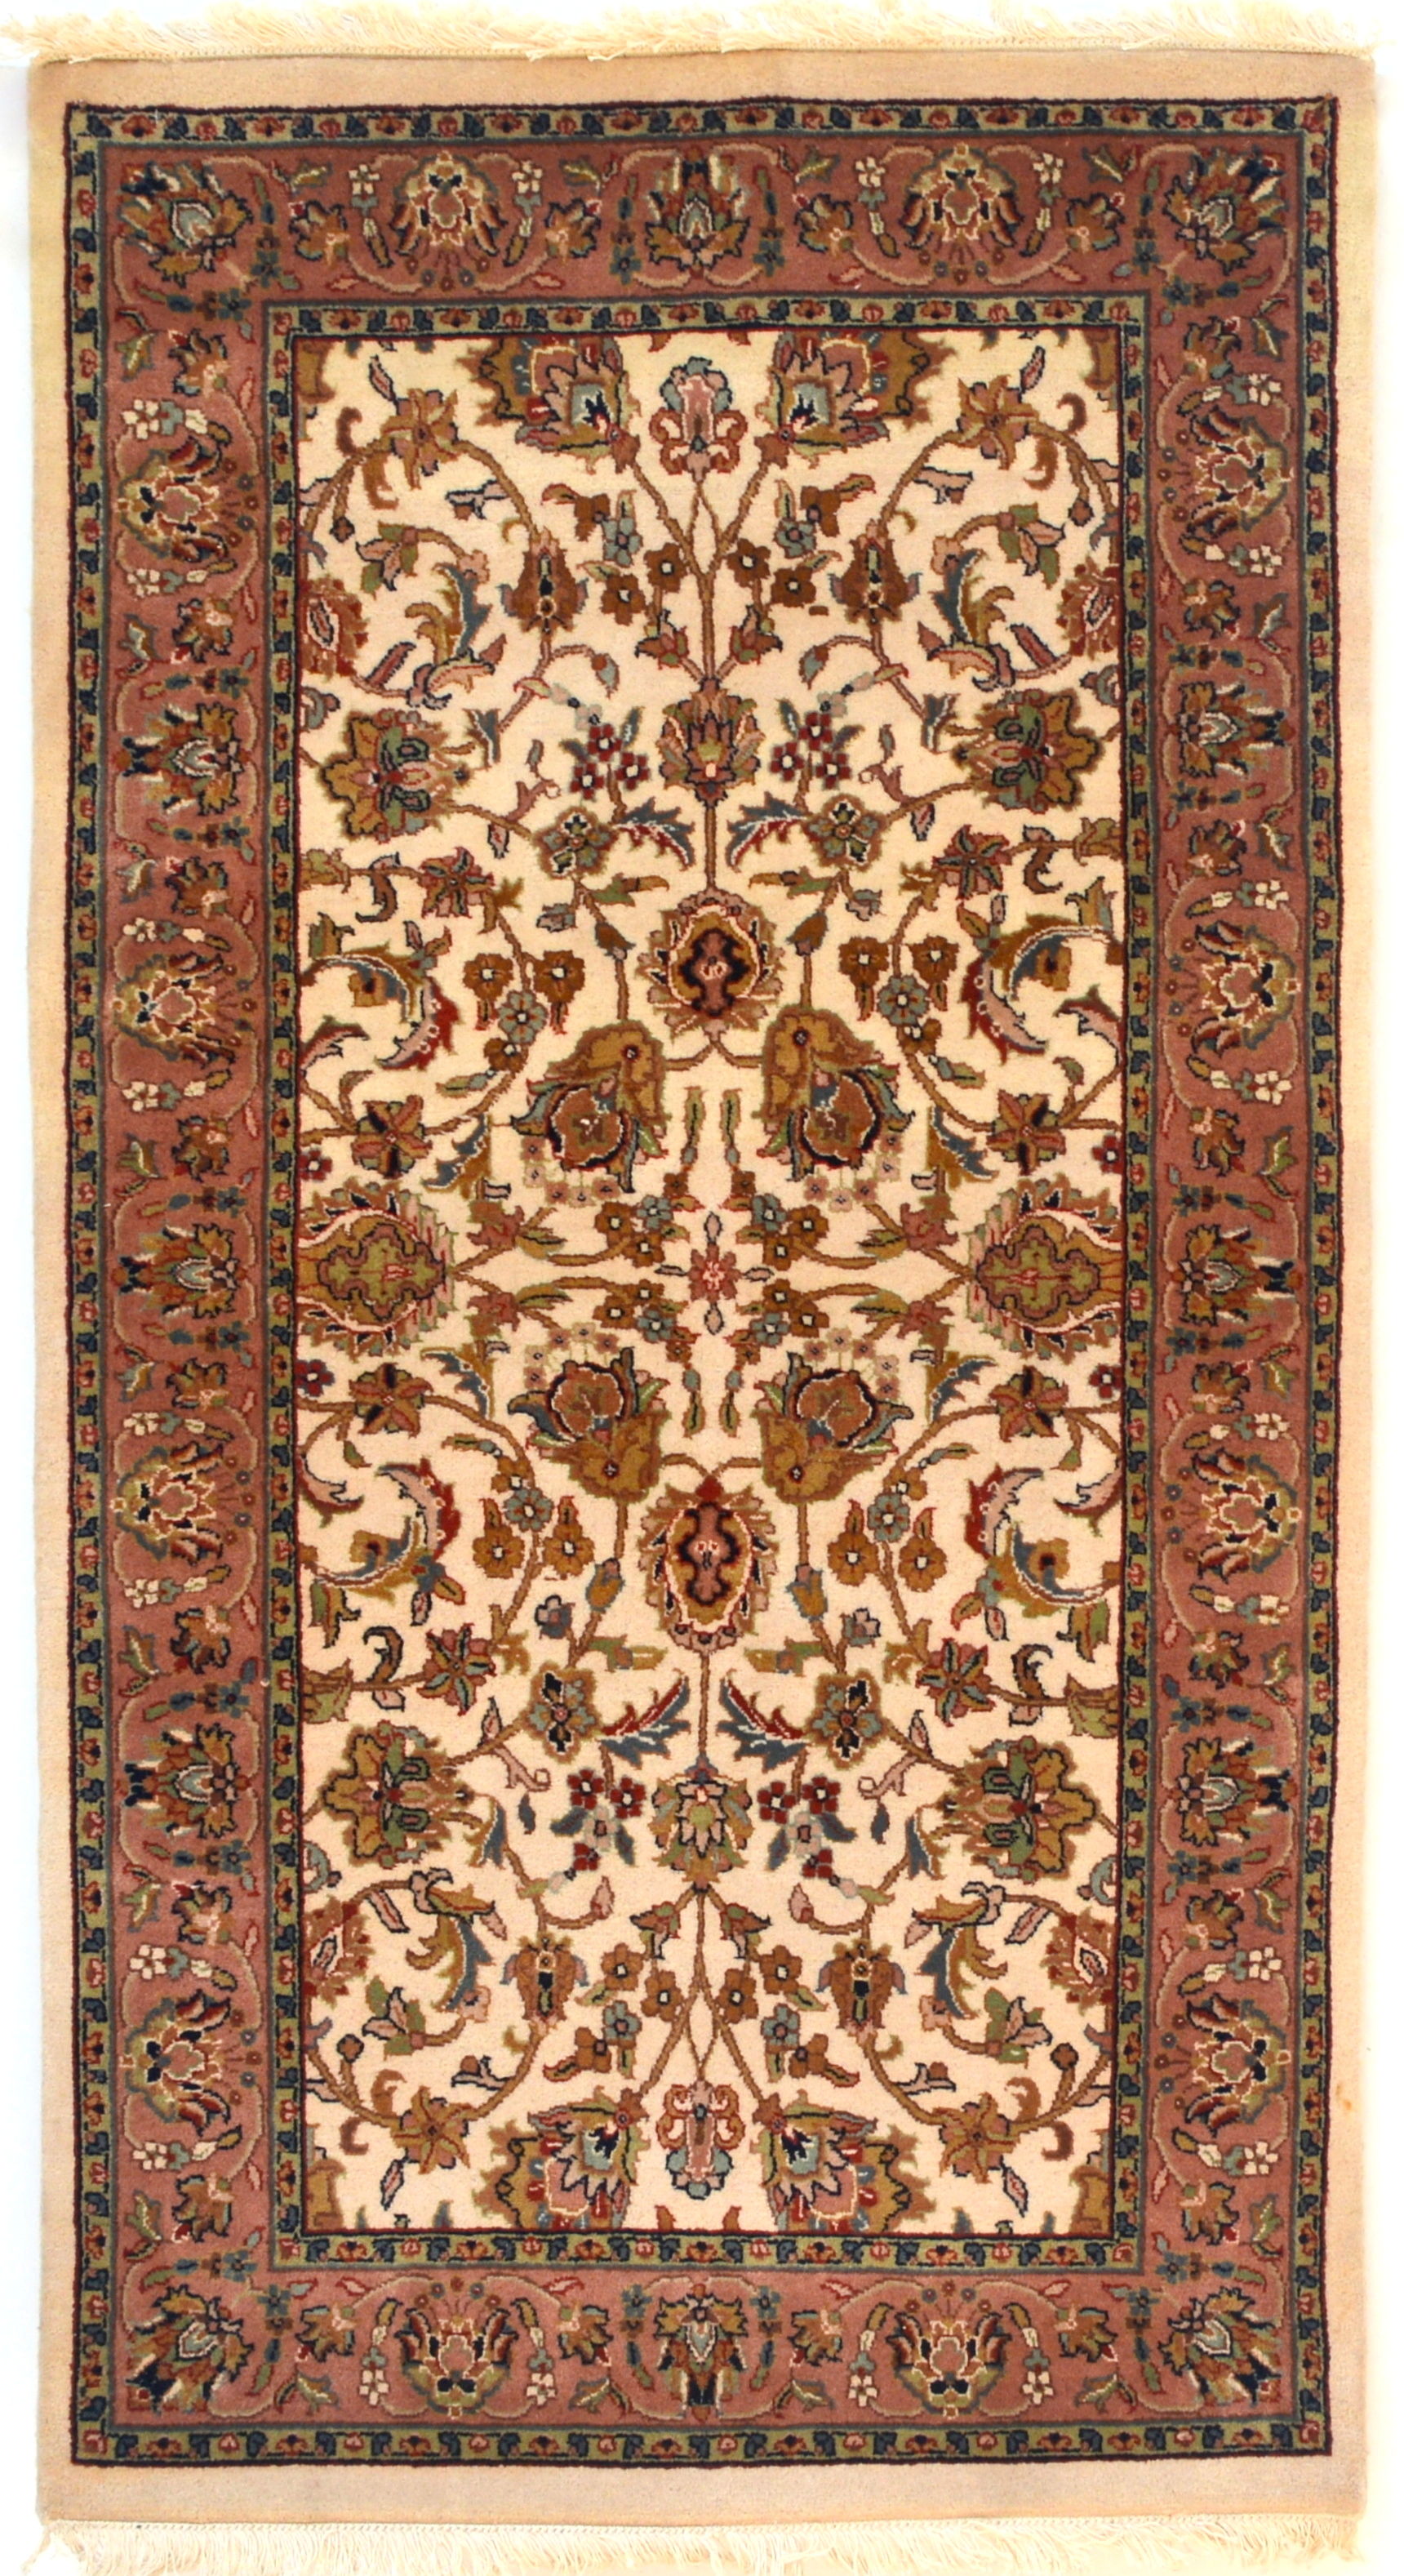 Searching and Shopping for Fine Antique Rugs Online. Shopping for antique carpets fine rugs online should be easy. This is a no-brainer for internet savvy shoppers, but not all rug dealers make finding the perfect antique rug easy.